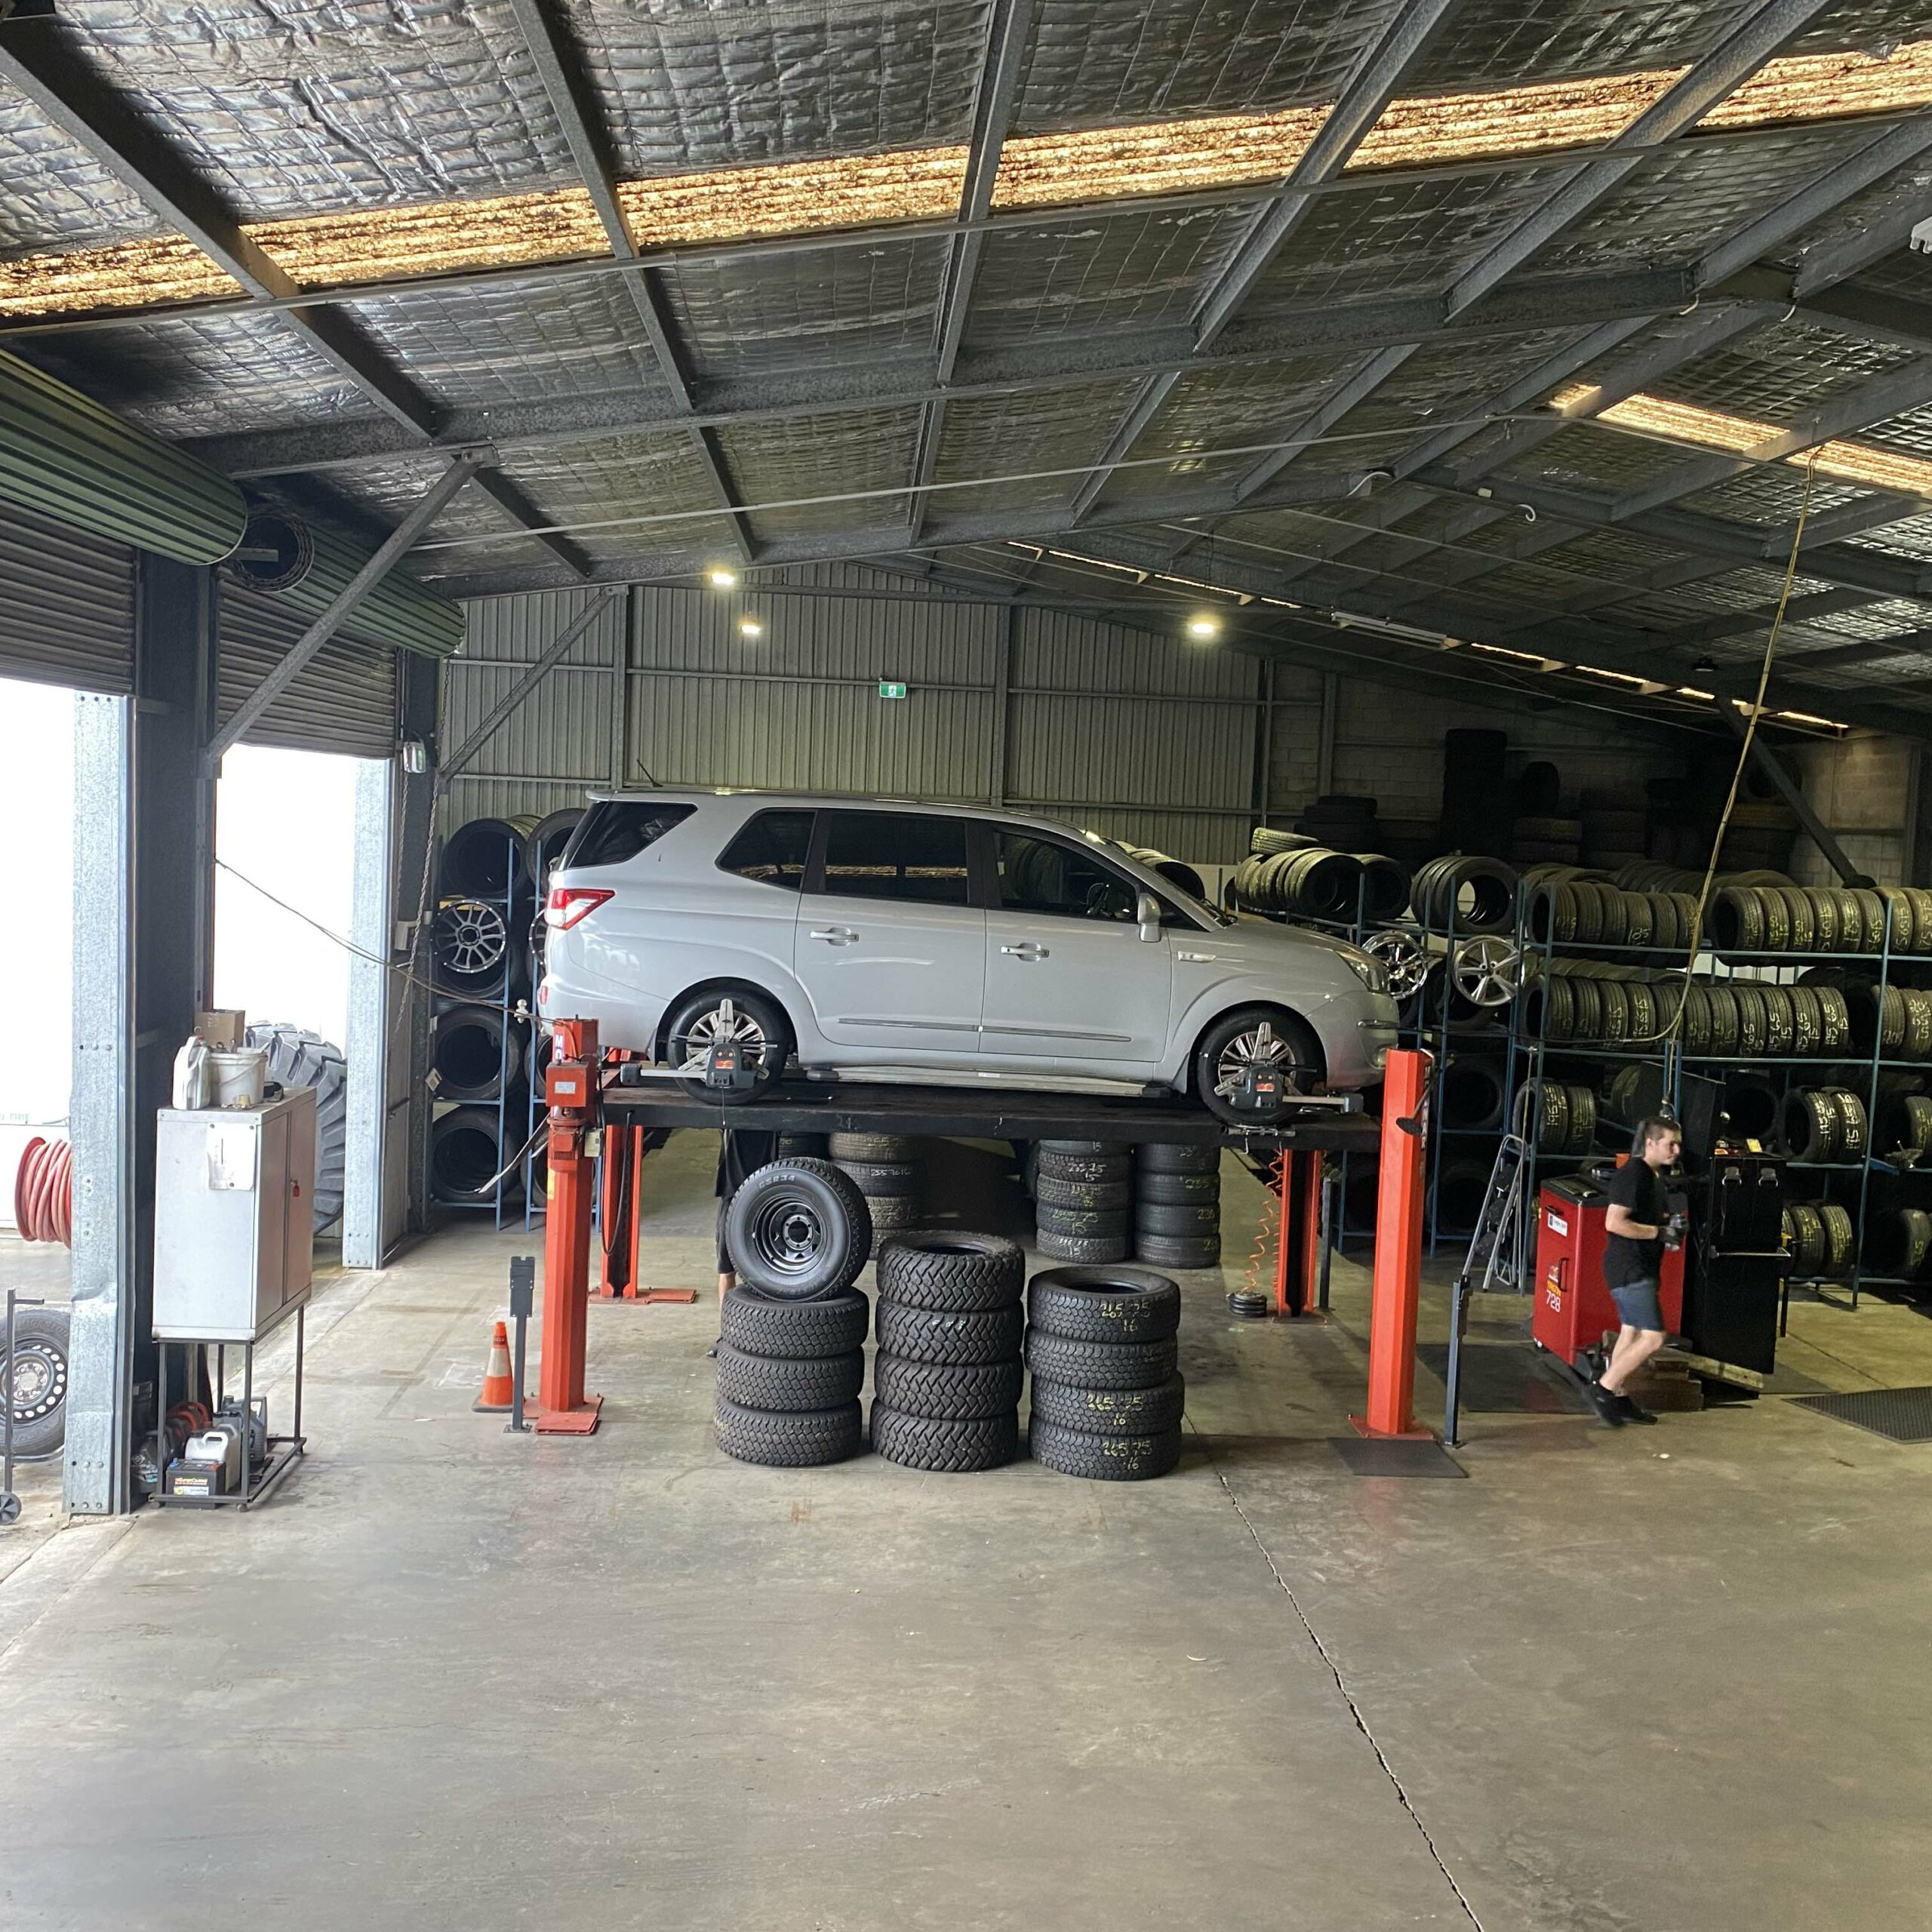 Car on jack at the Branigans Burleigh Heads tyre shop.